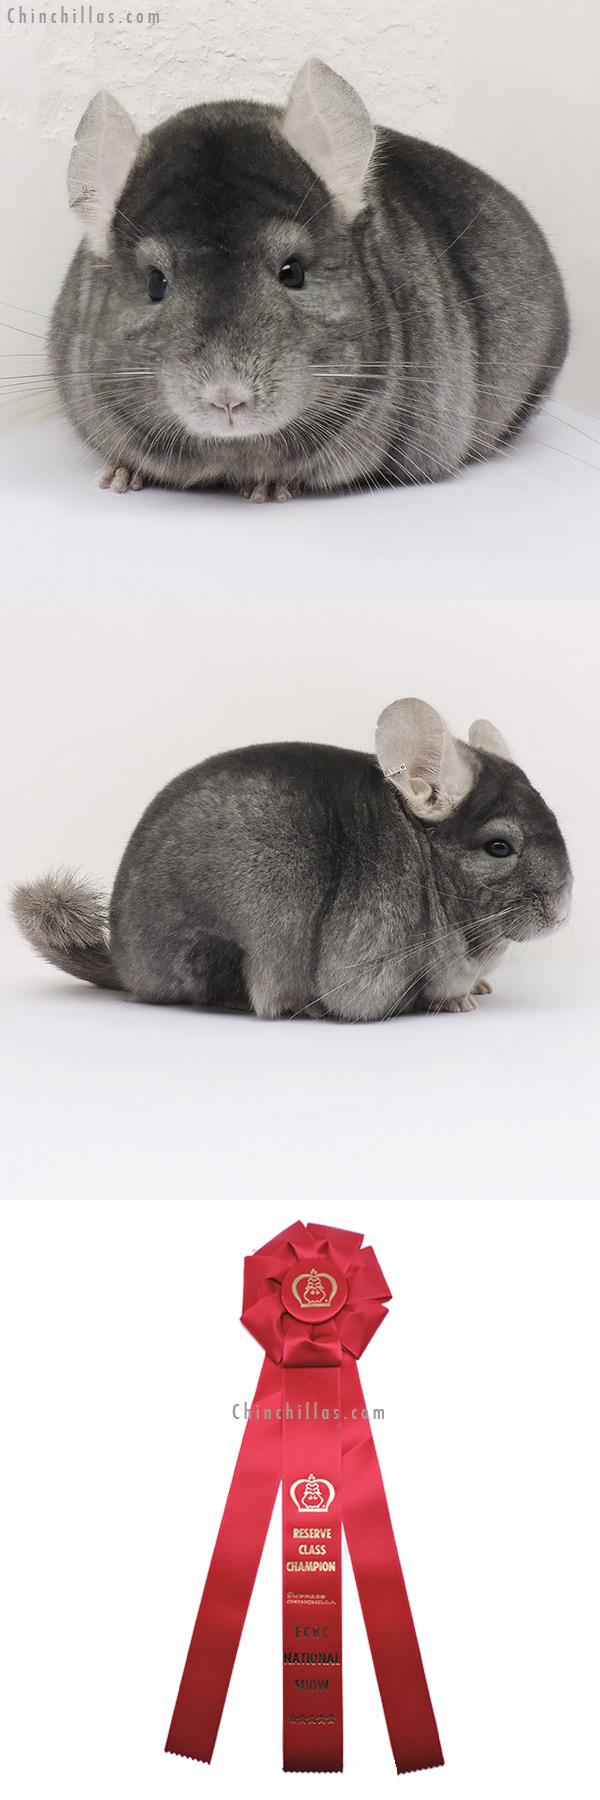 15158 ECBC National Reserve Class Champion Wrap Around Sapphire Female Chinchilla